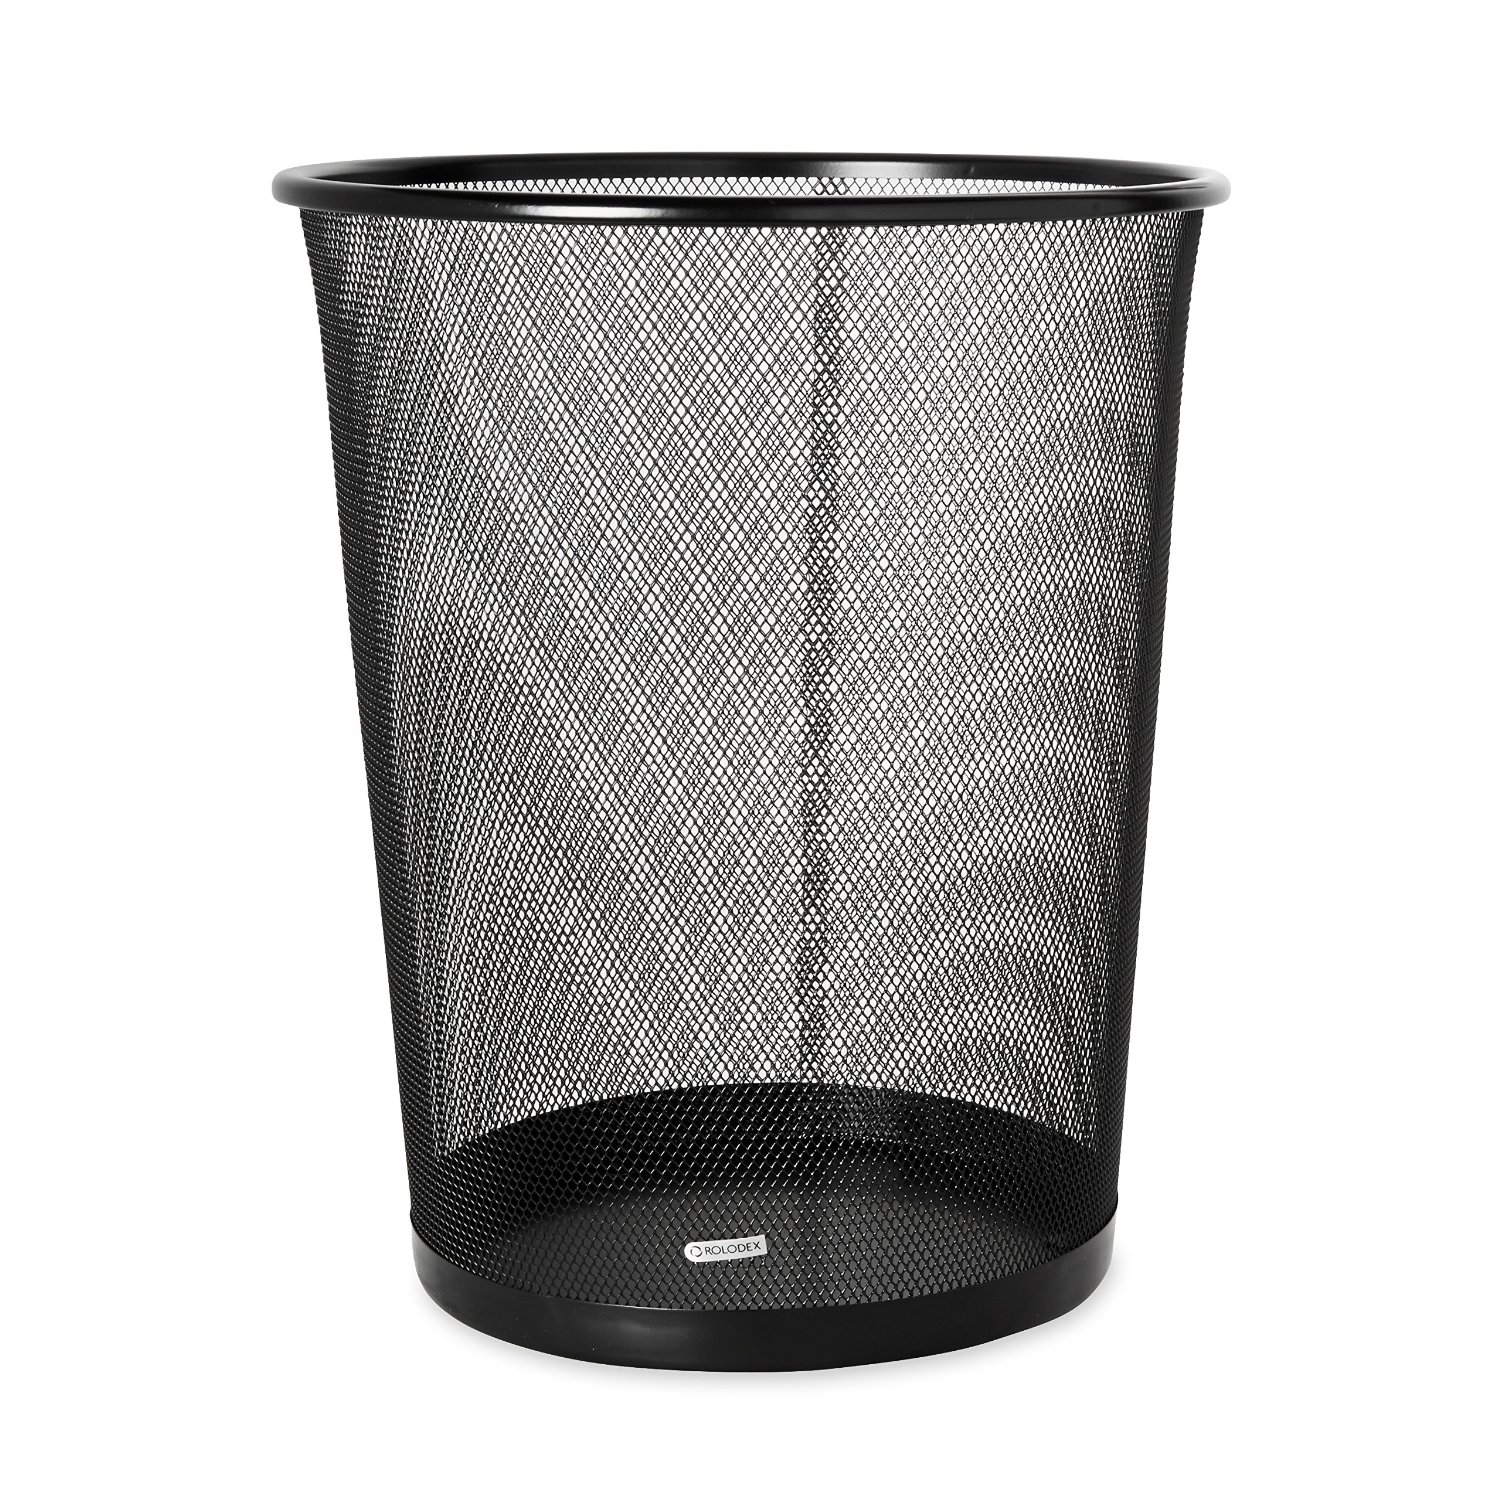 Office wastepaper bin